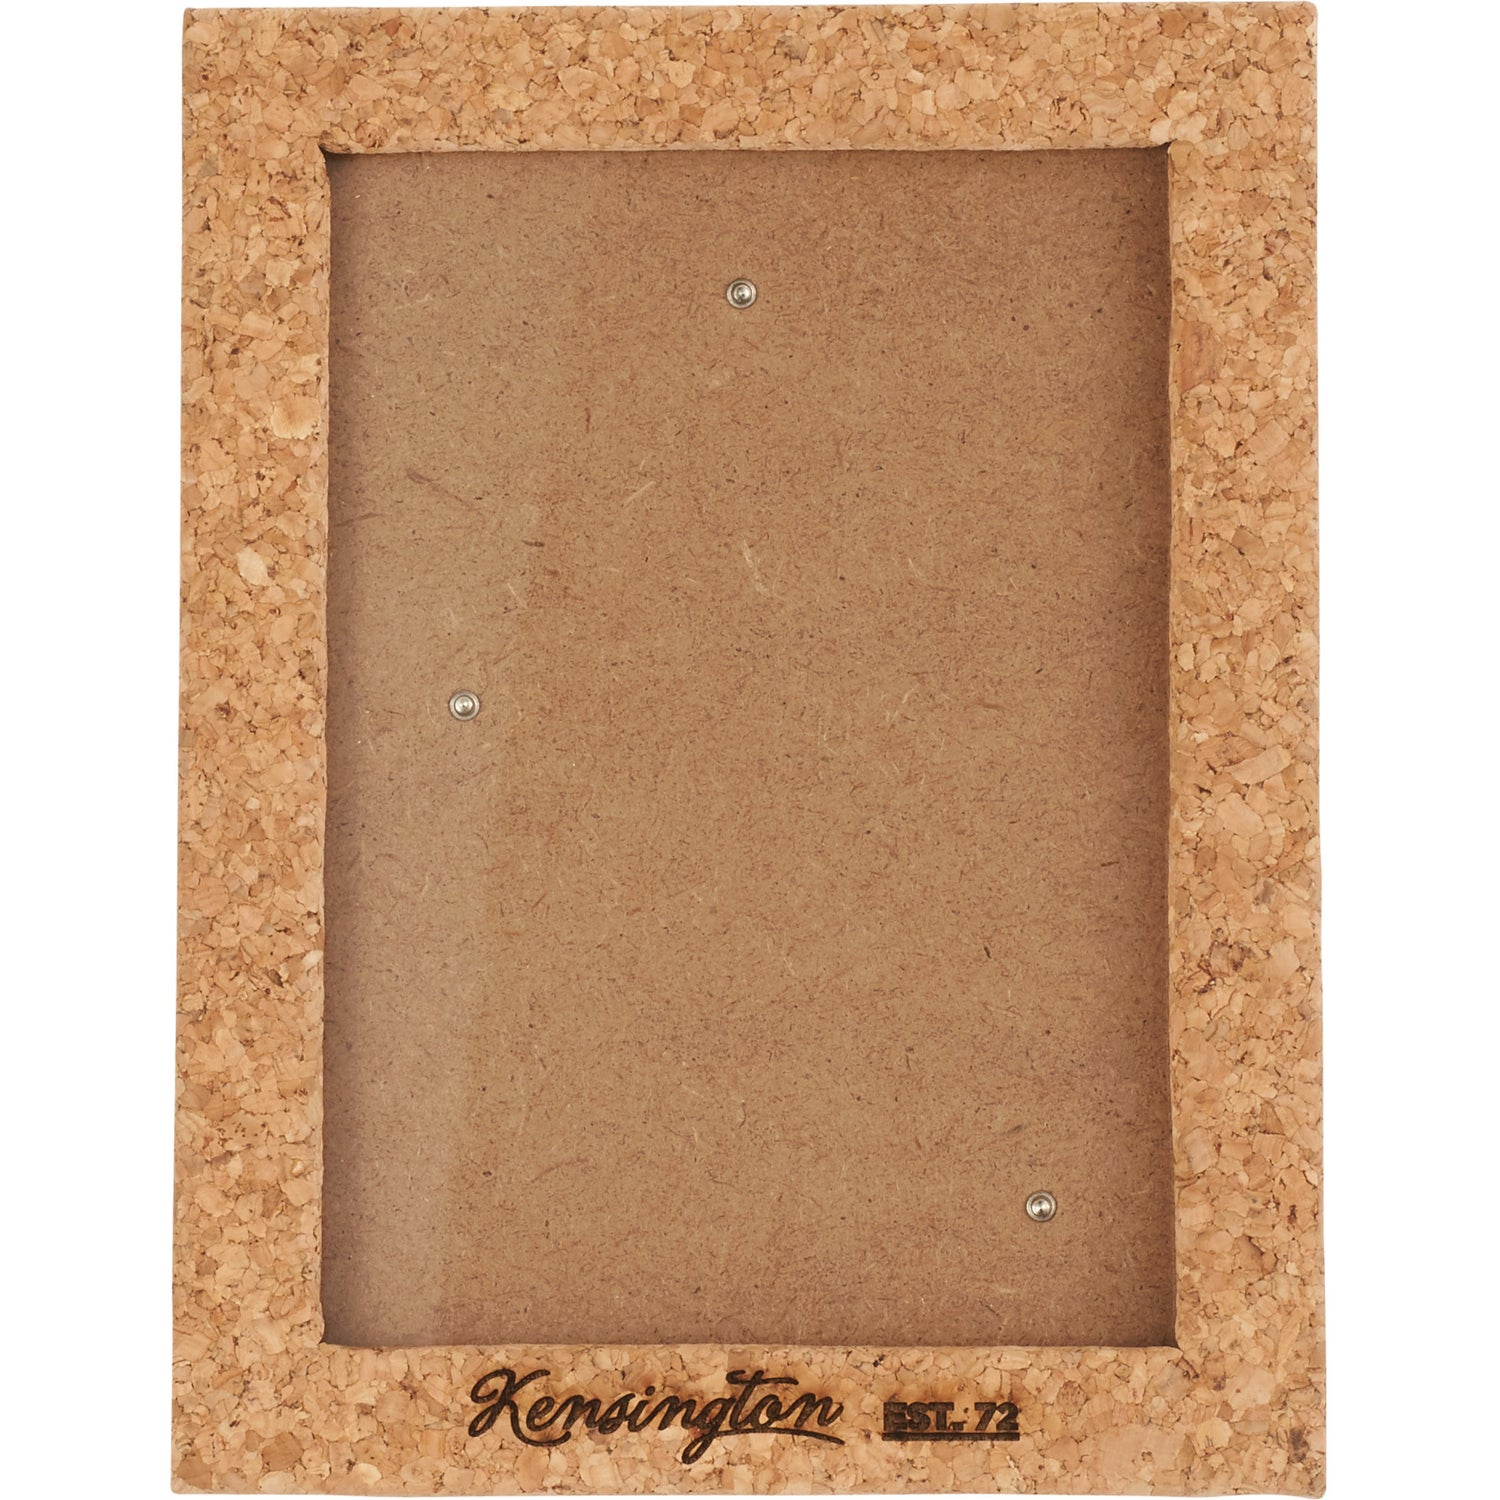 Promotional 5 X 7 Cork Frames With Custom Logo For 1888 Ea